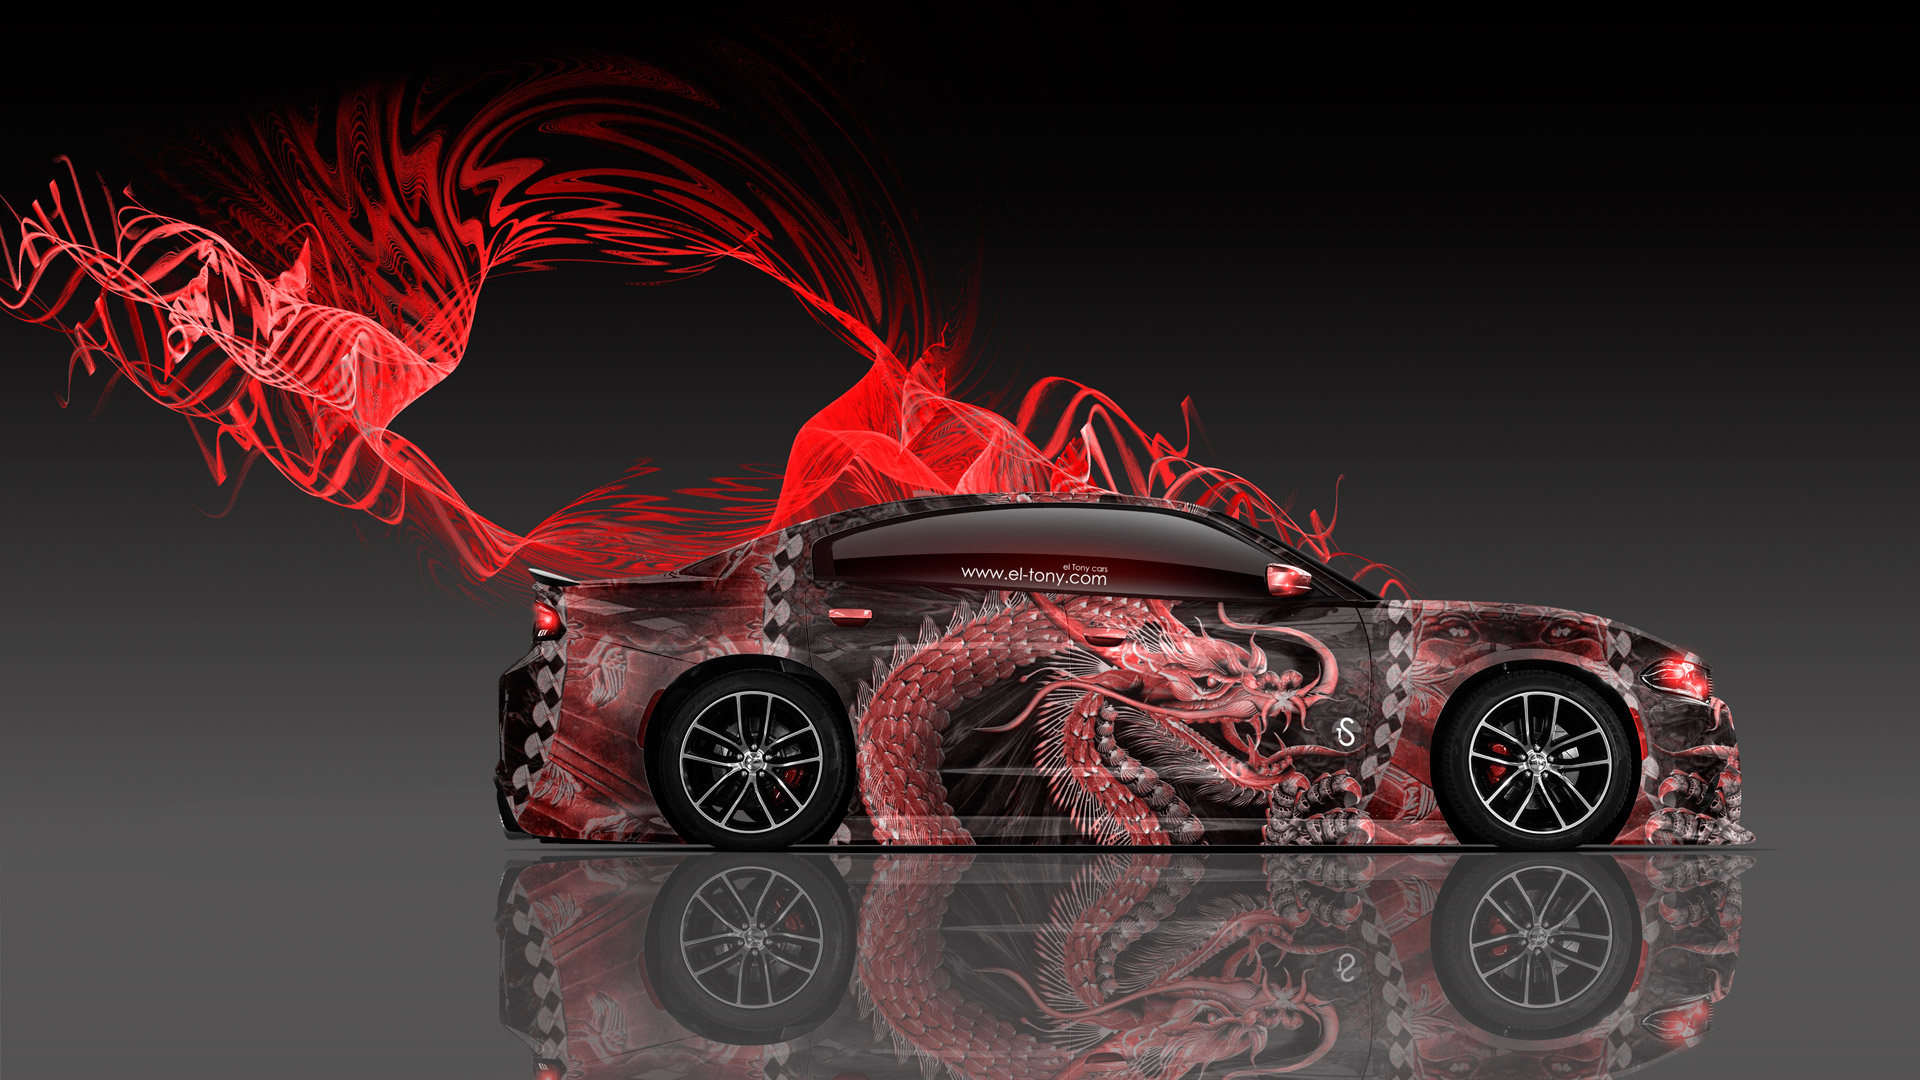 Free Muscle Car Wallpapers For Desktop Dodge Charger Rt Muscle Dragon Aerography Car 2015 El Tony